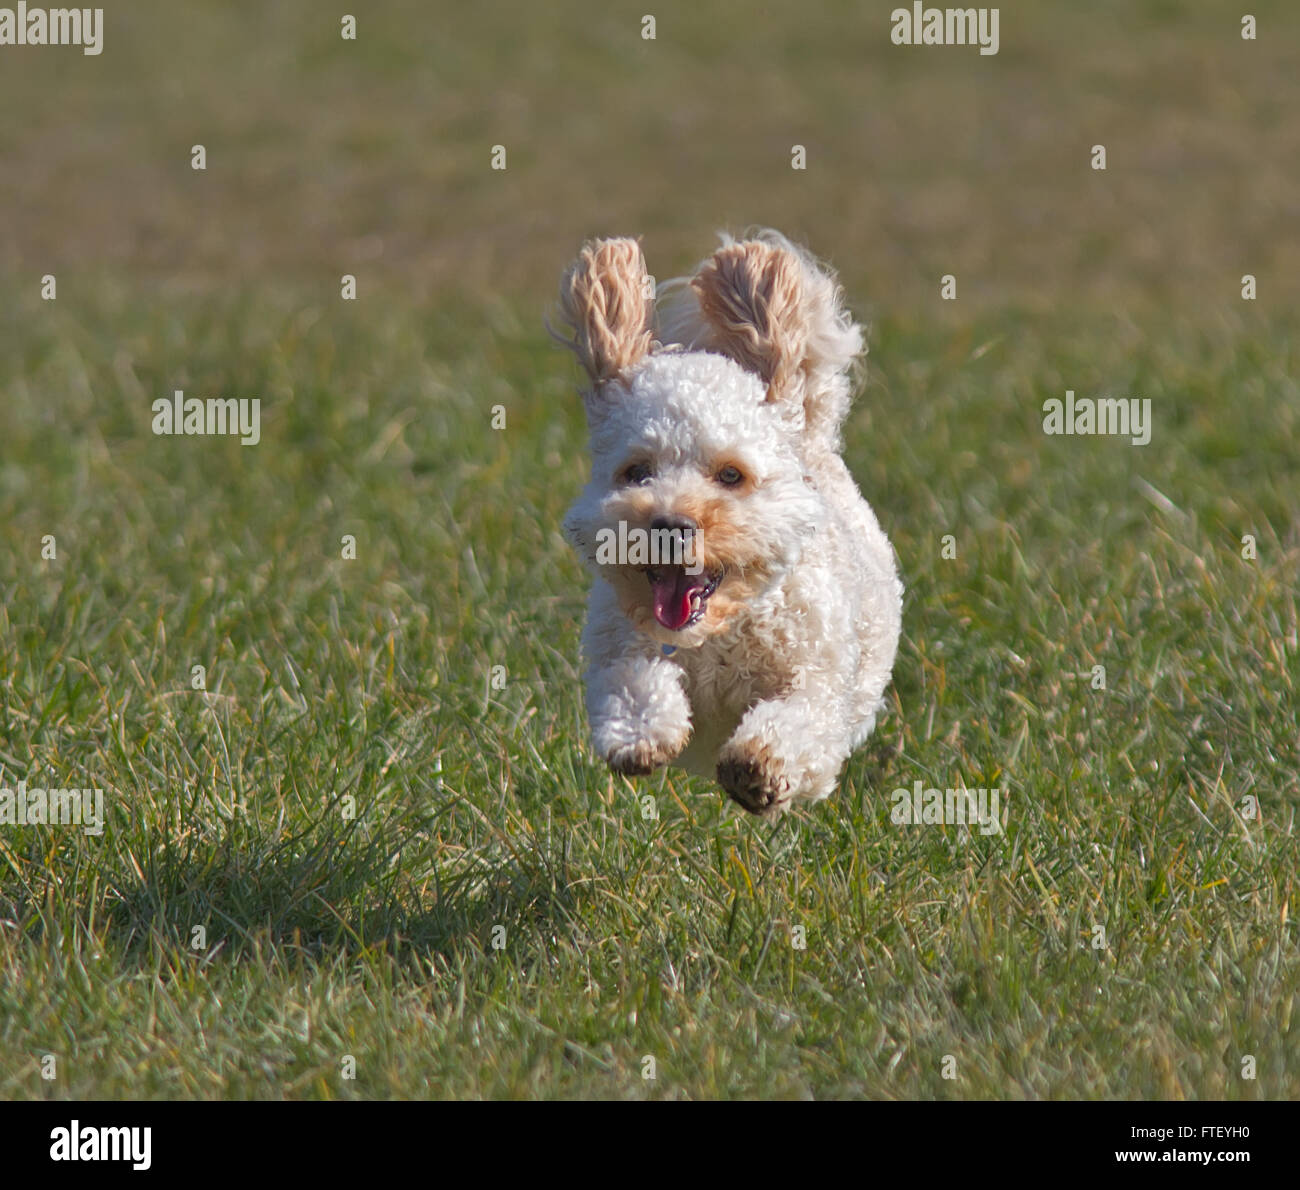 Cavapoo puppy running. front view - Stock Image